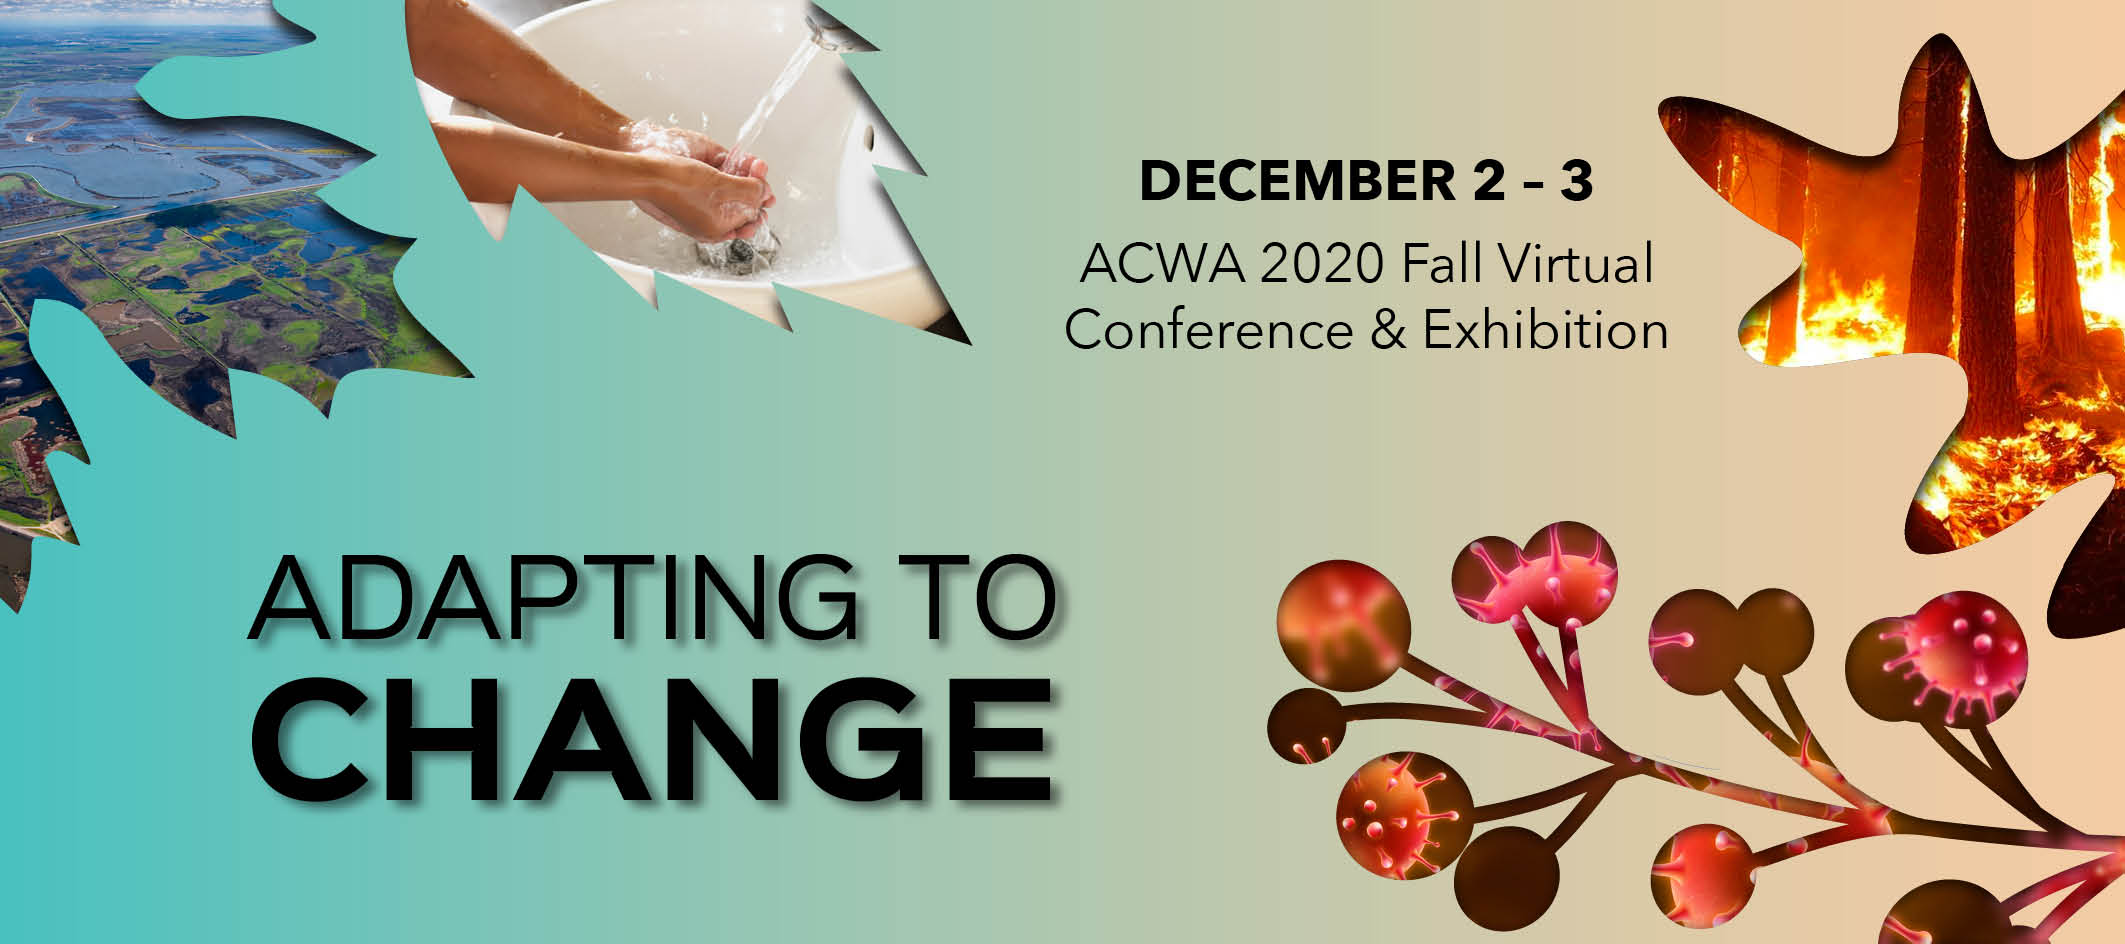 Chandler's Professionals at the 2020 ACWA Fall Virtual Conference & Exhibition